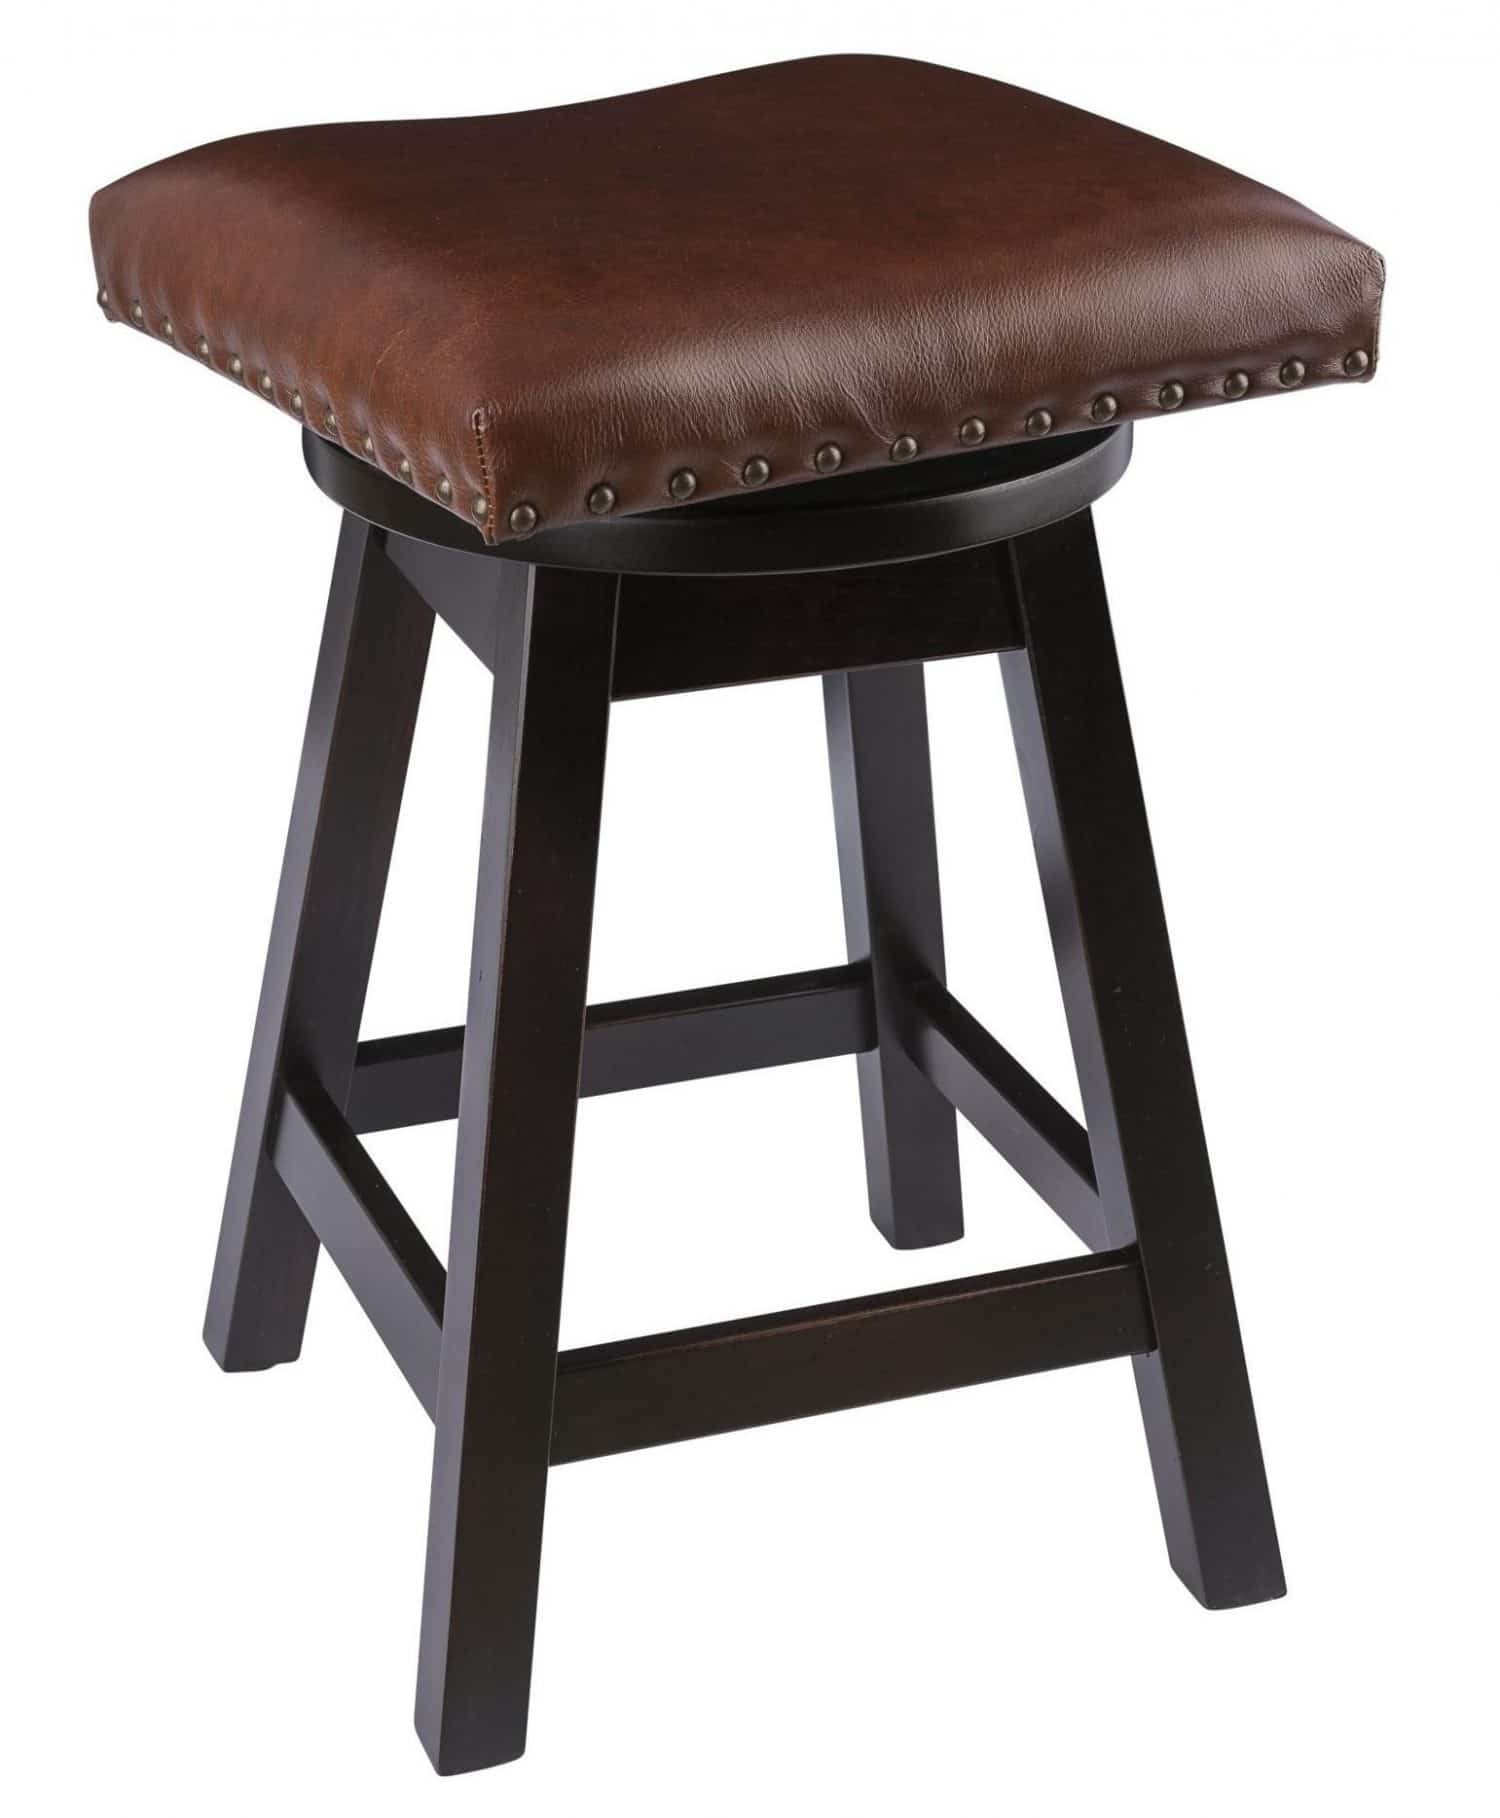 Backless Swivel Bar Stool With Leather Seat